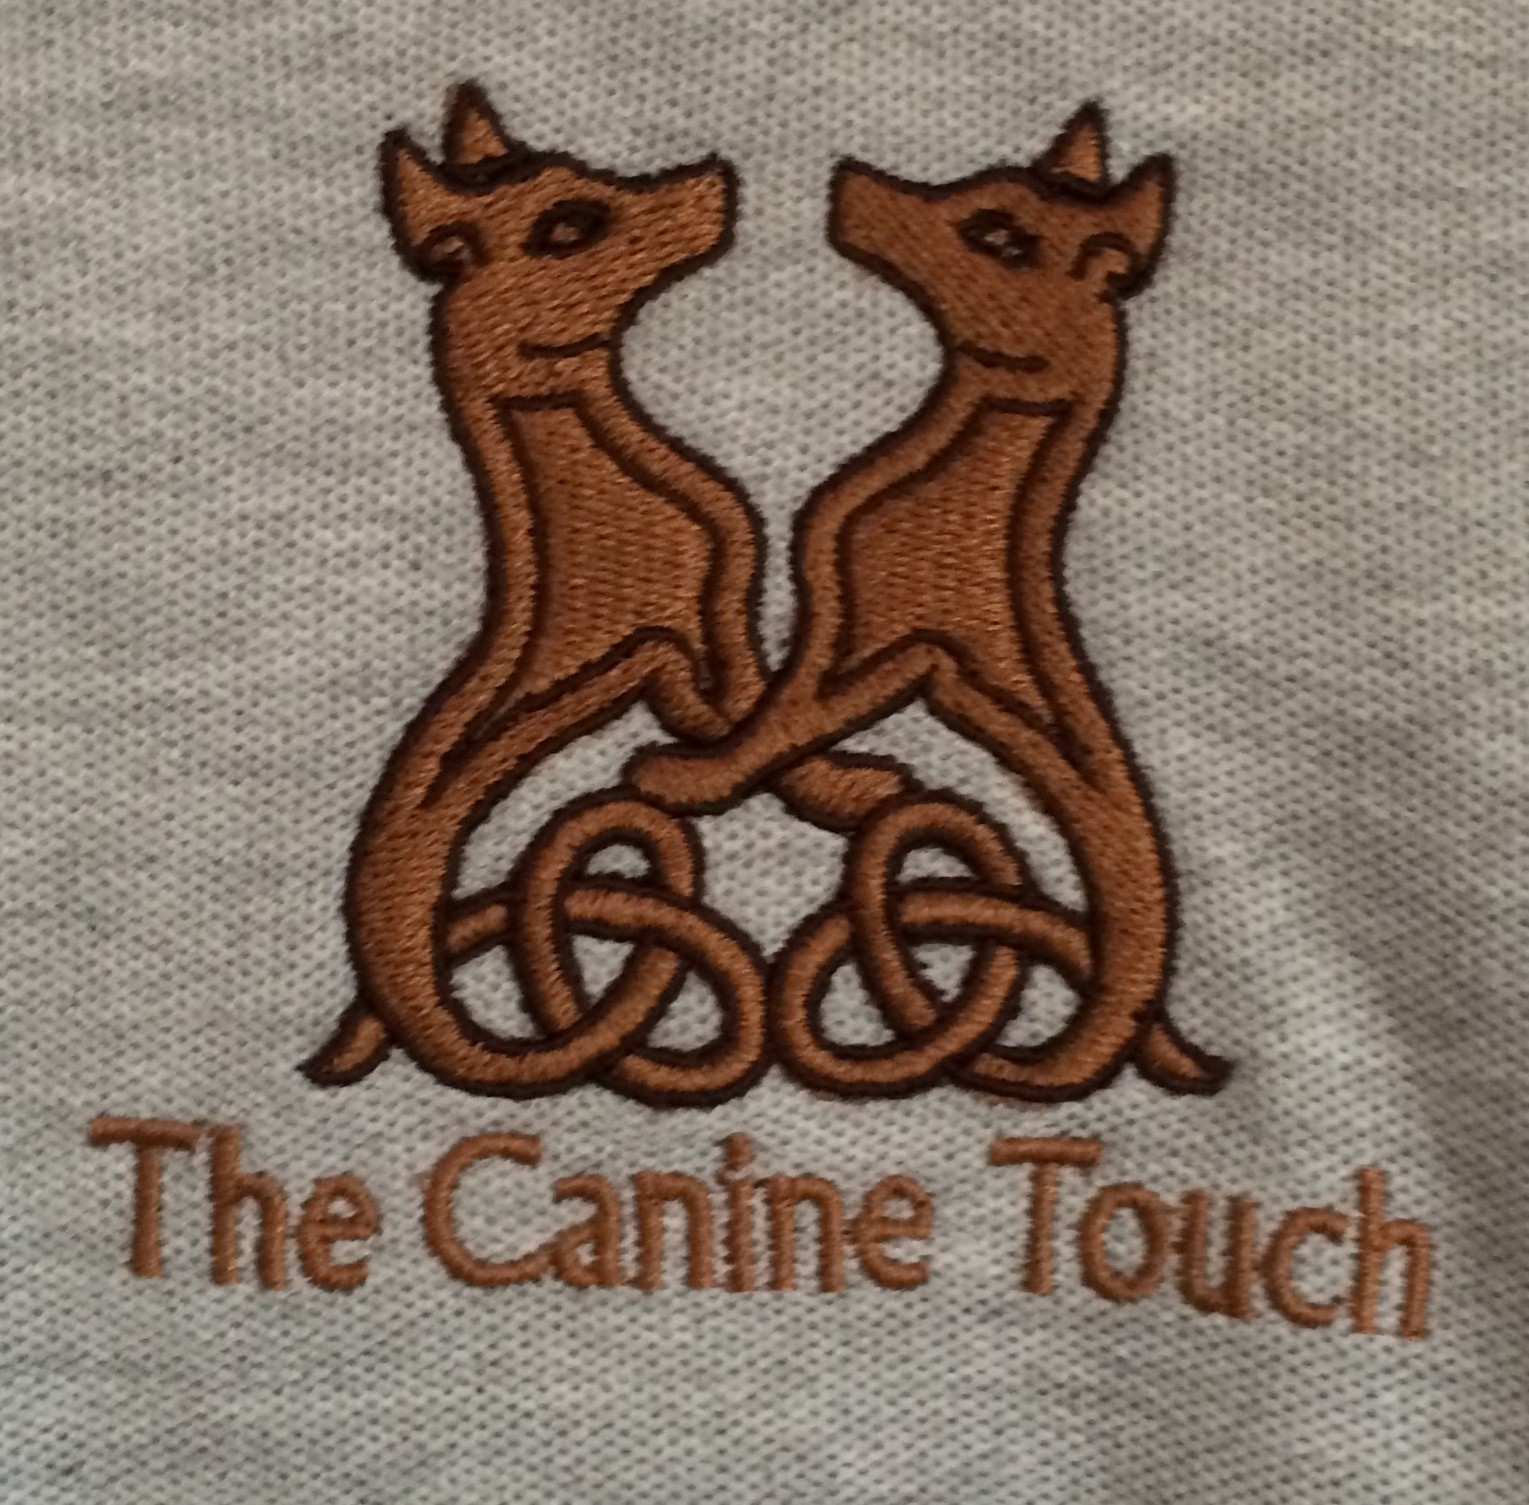 Canine Touch Left Breast logo